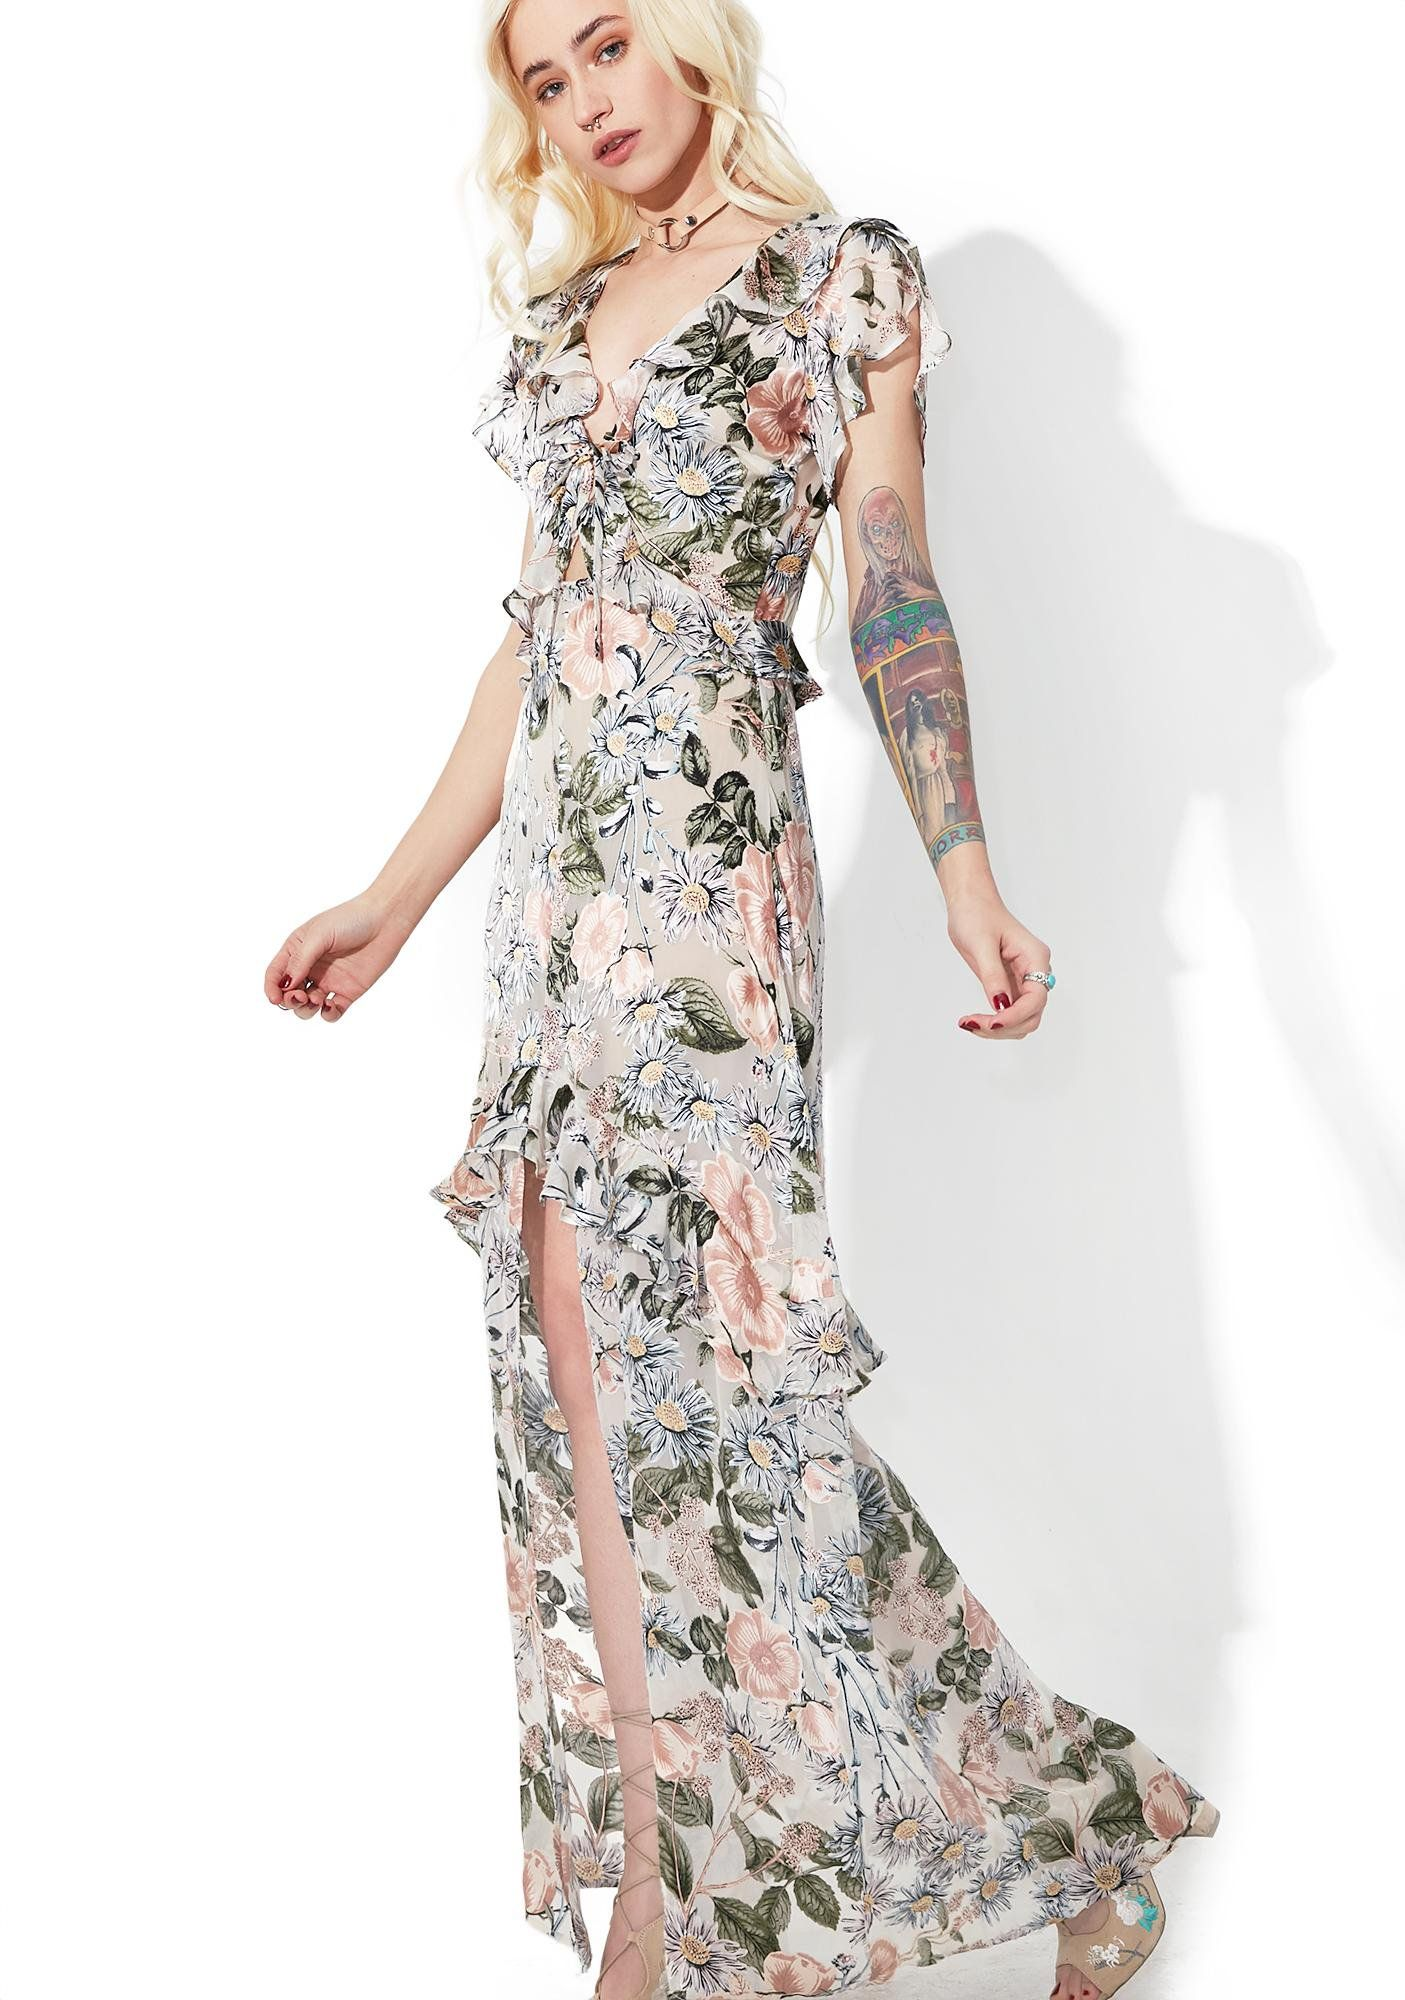 59f58119947b ... upon a time, there was a beautiful Doll….Tell yer own modern fairytale  with this whimsical maxi dress featuring front tie detailing, delicate  floral ...